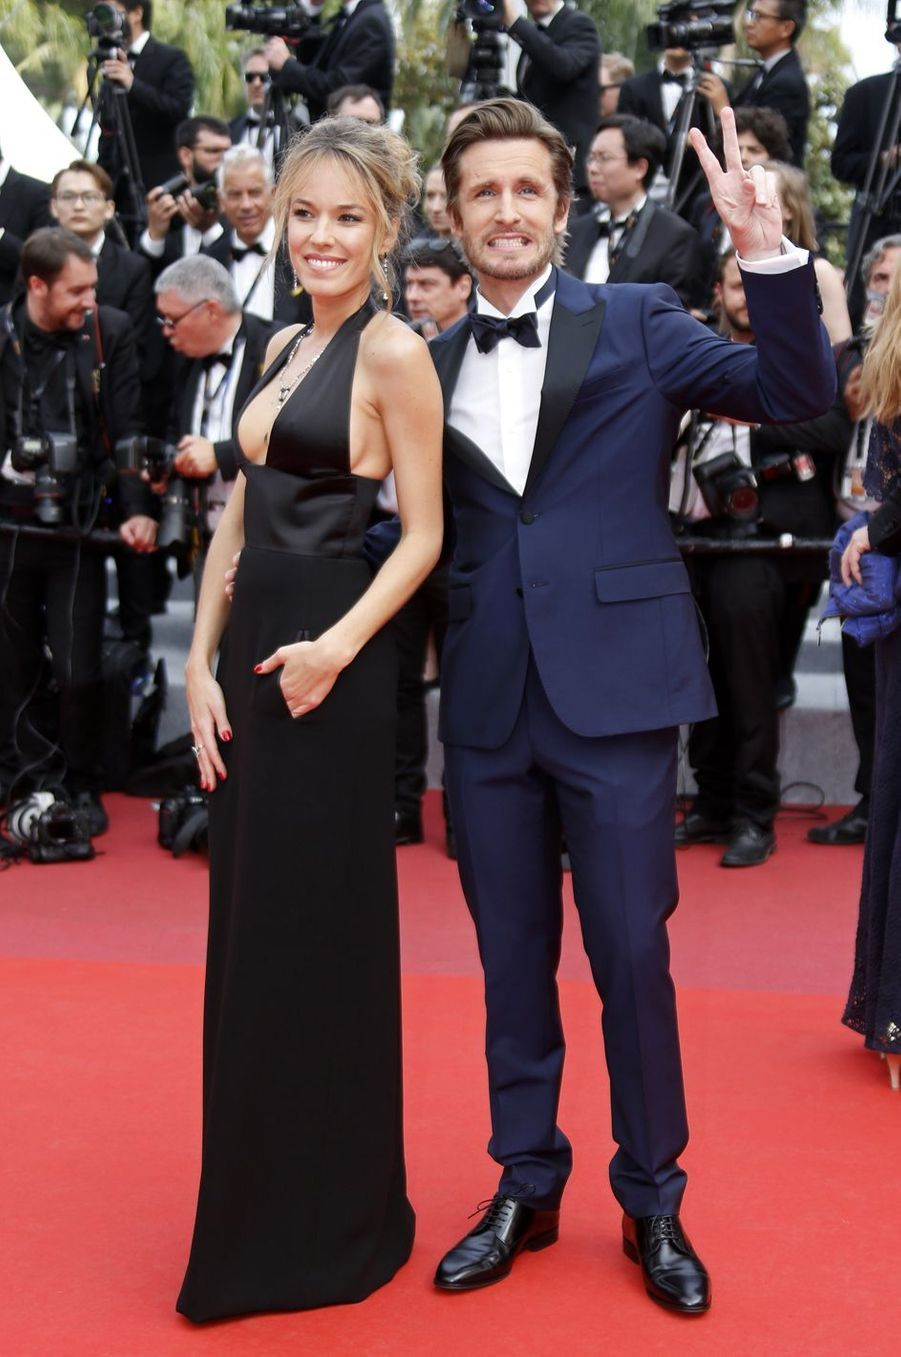 Elodie Fontan et Philippe Lacheau lors de la montée des marches du film «Once Upon A Time In Hollywood» à Cannes le 21 mai 2019